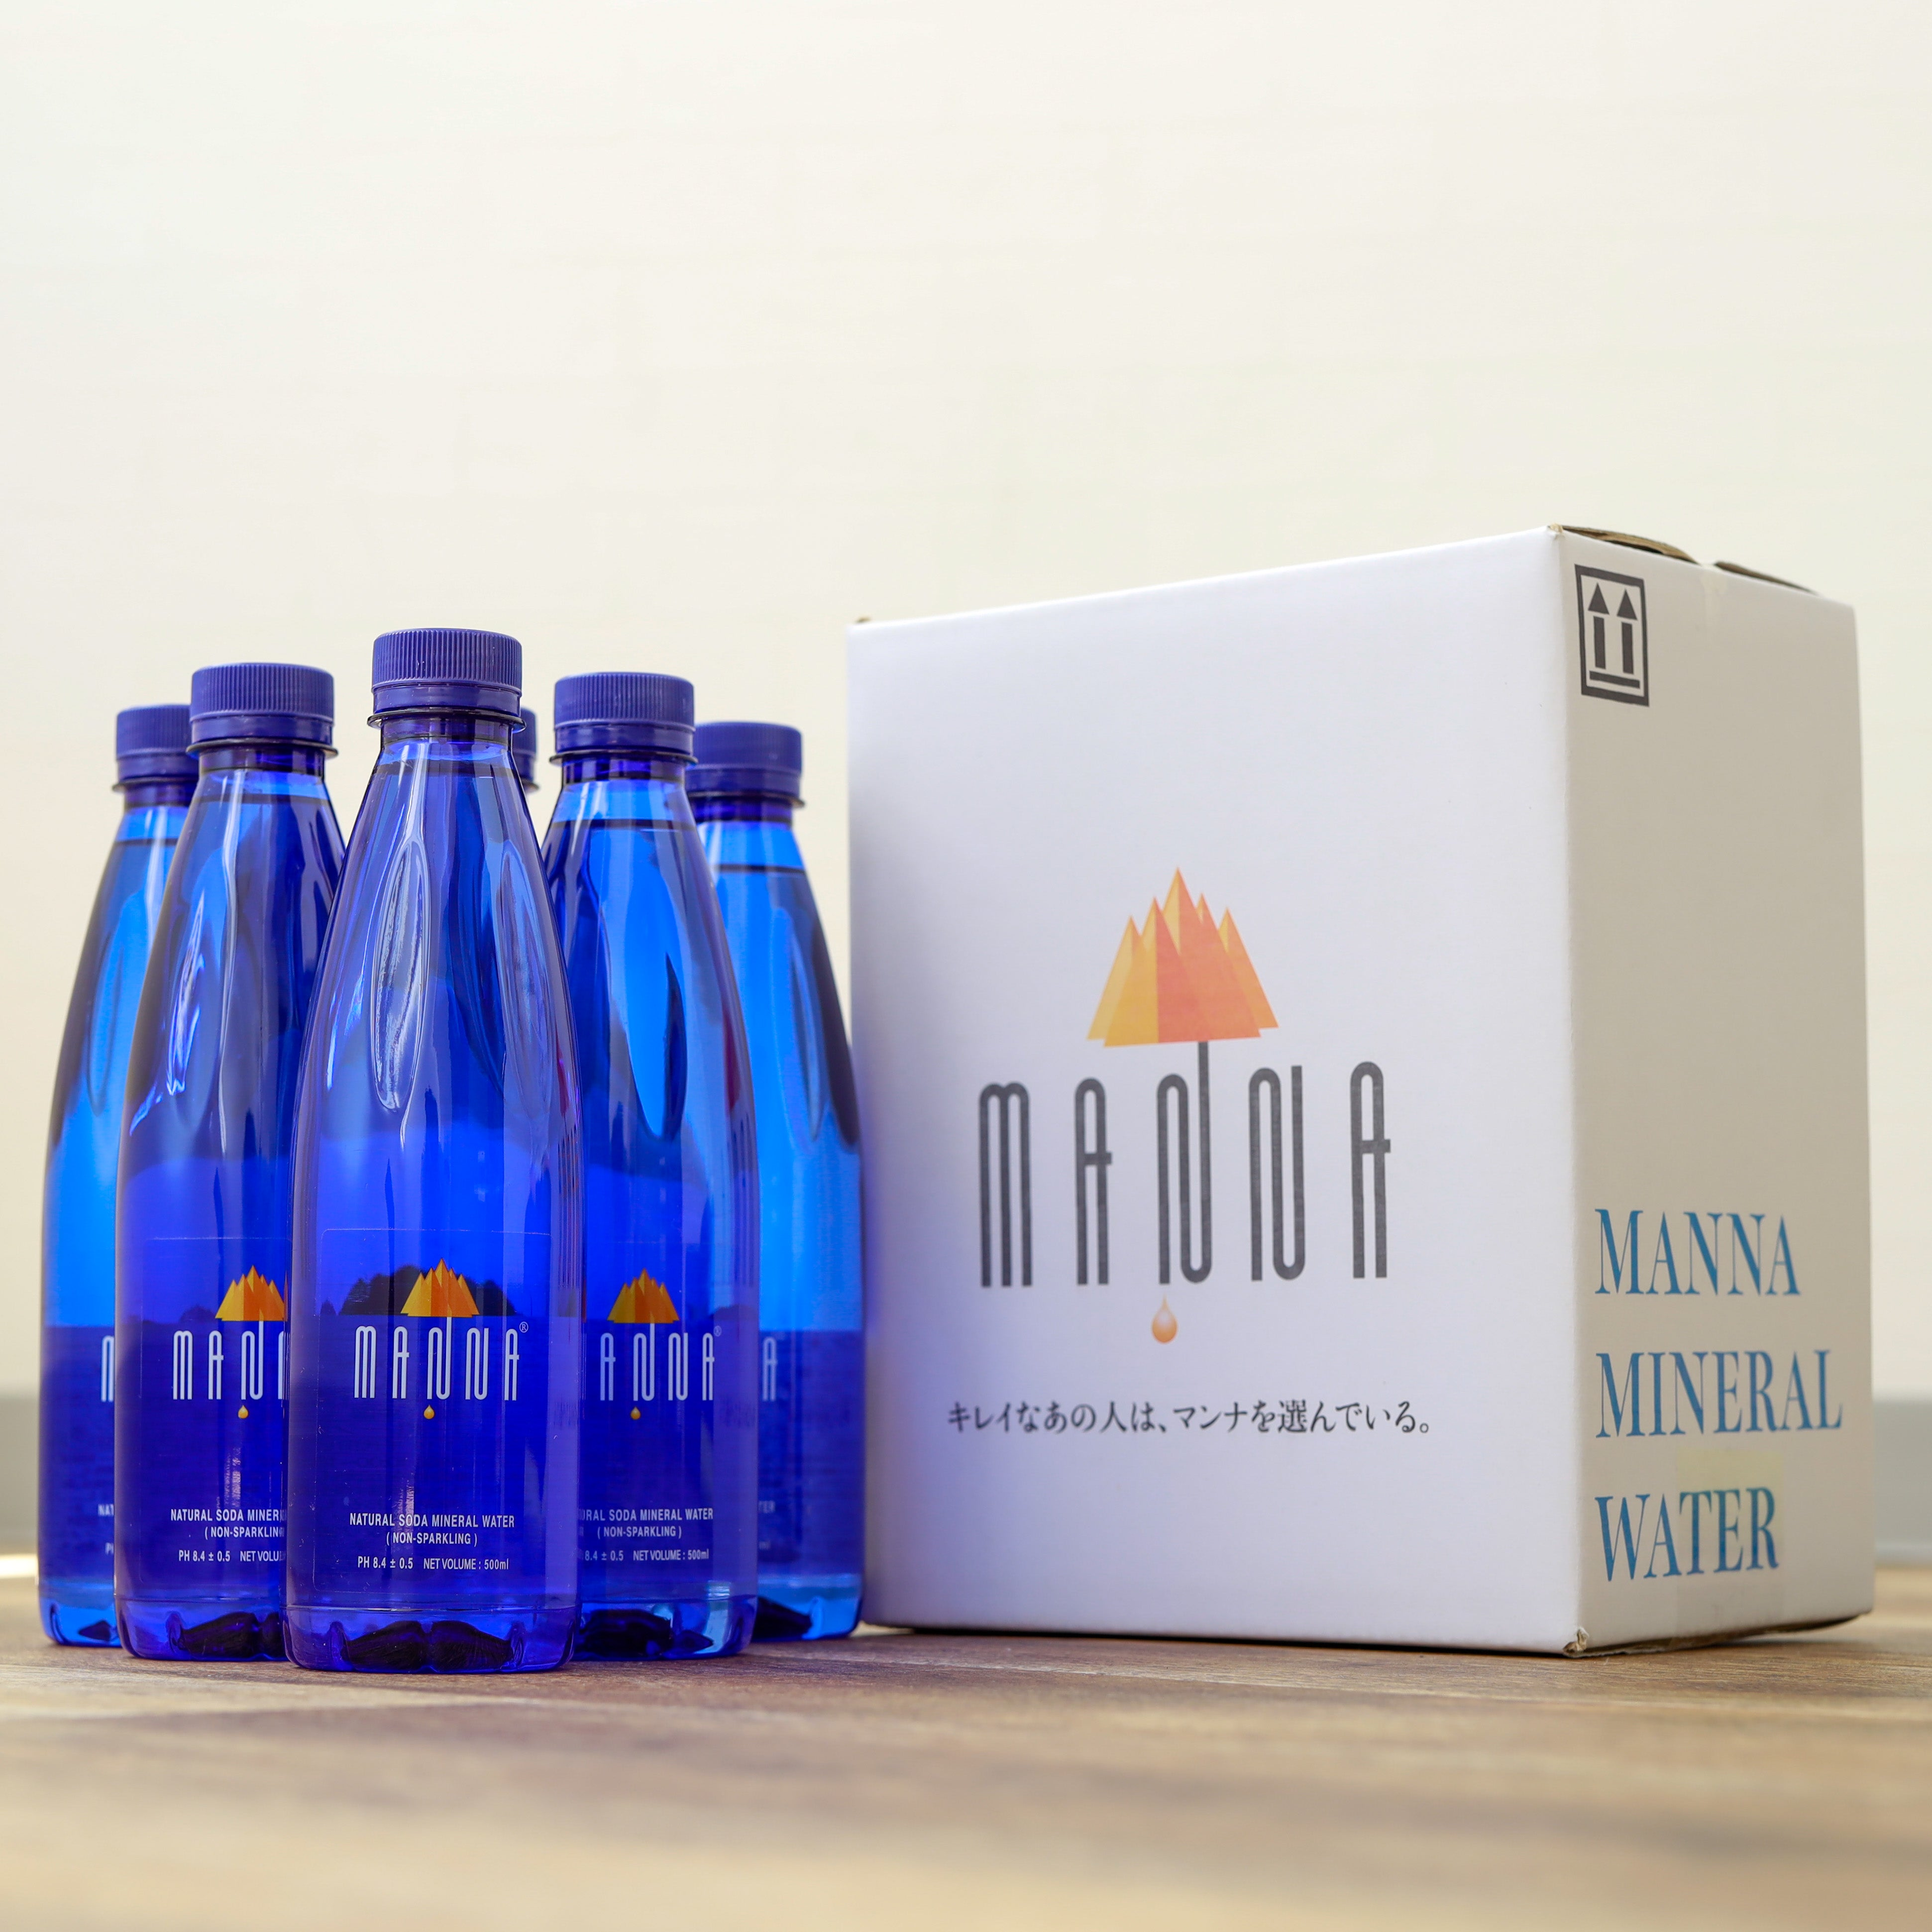 [Trial set] Mineral water 500ml x 6 [Free shipping]